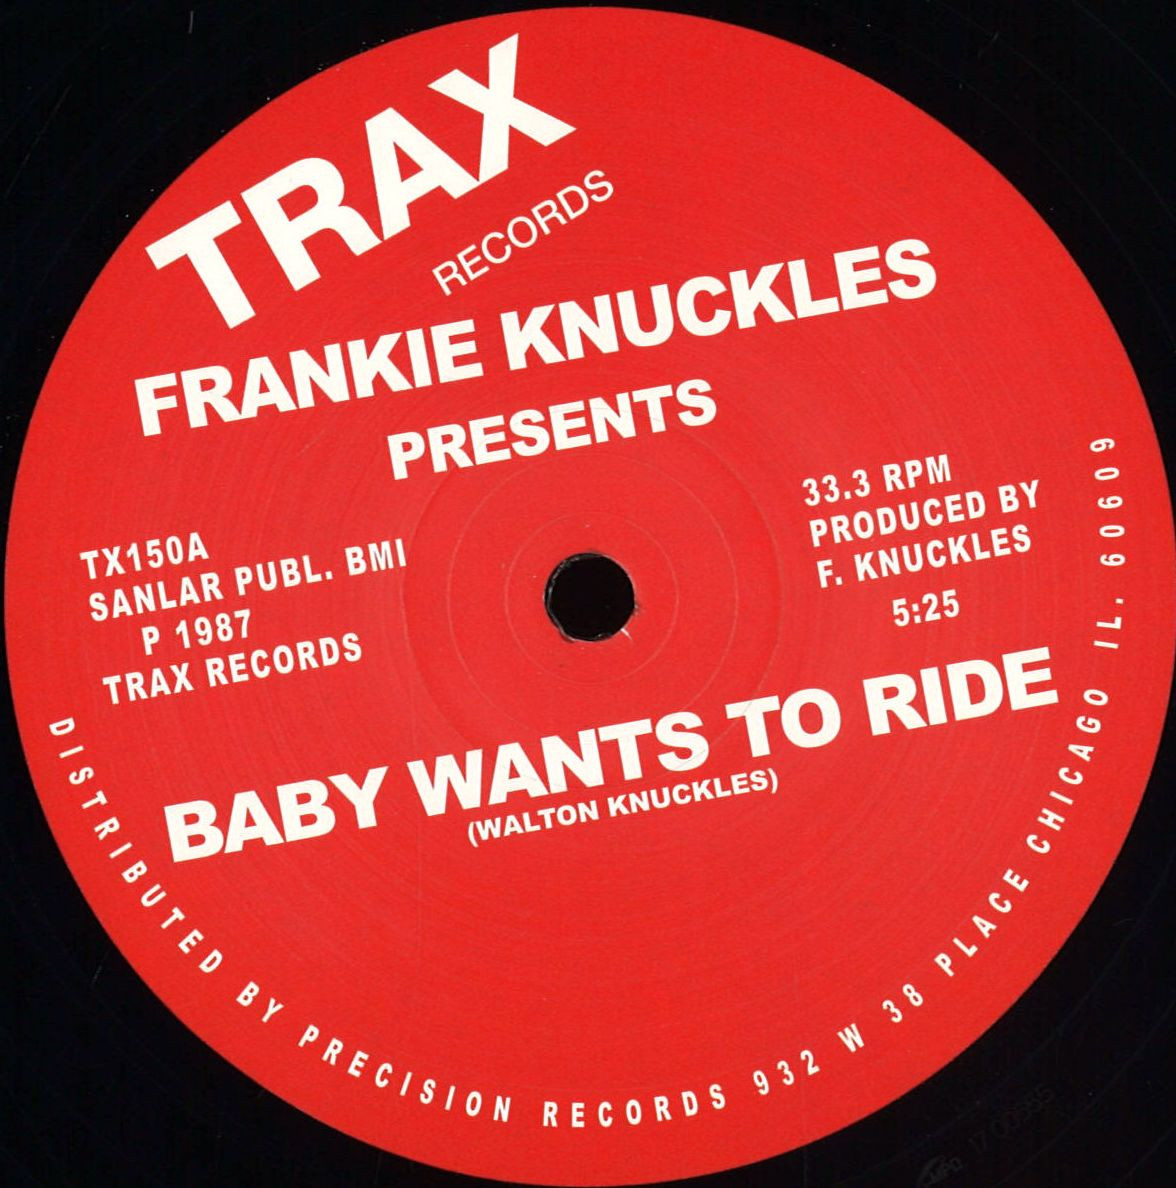 Frankie Knuckles Baby Wants To Ride Your Love Trax